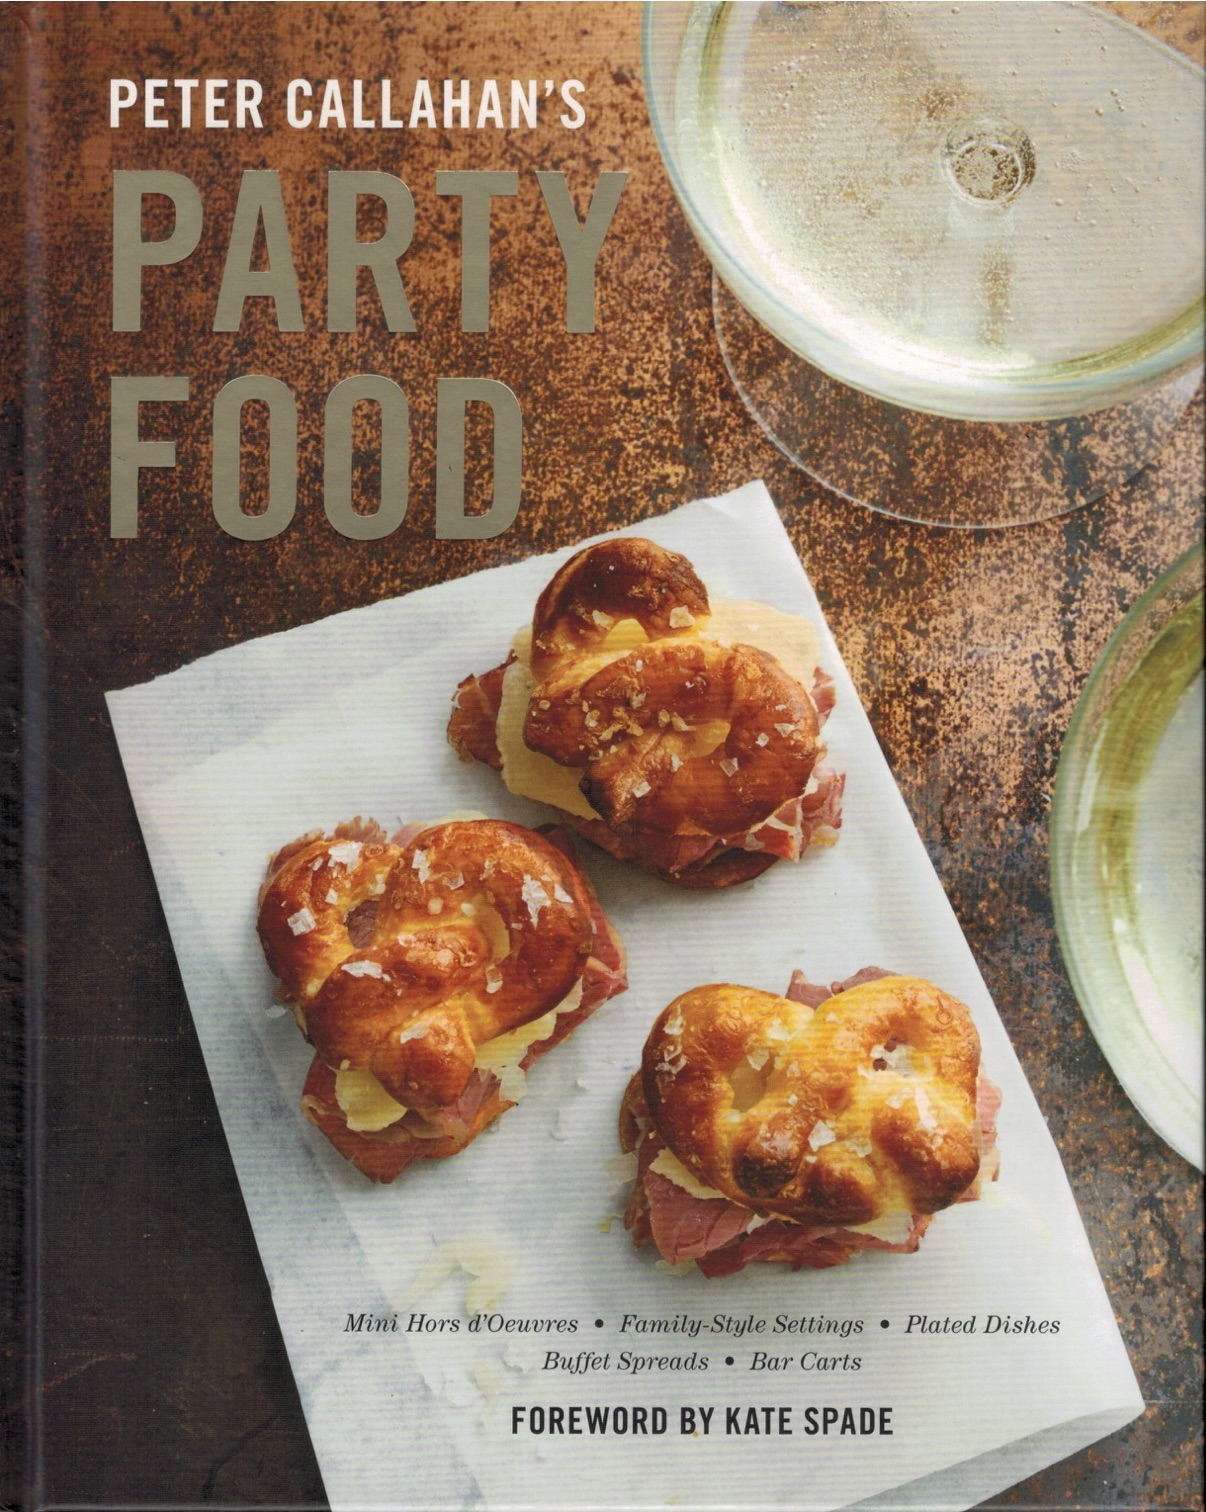 Party_Food_Book-pg1-jpeg.jpg